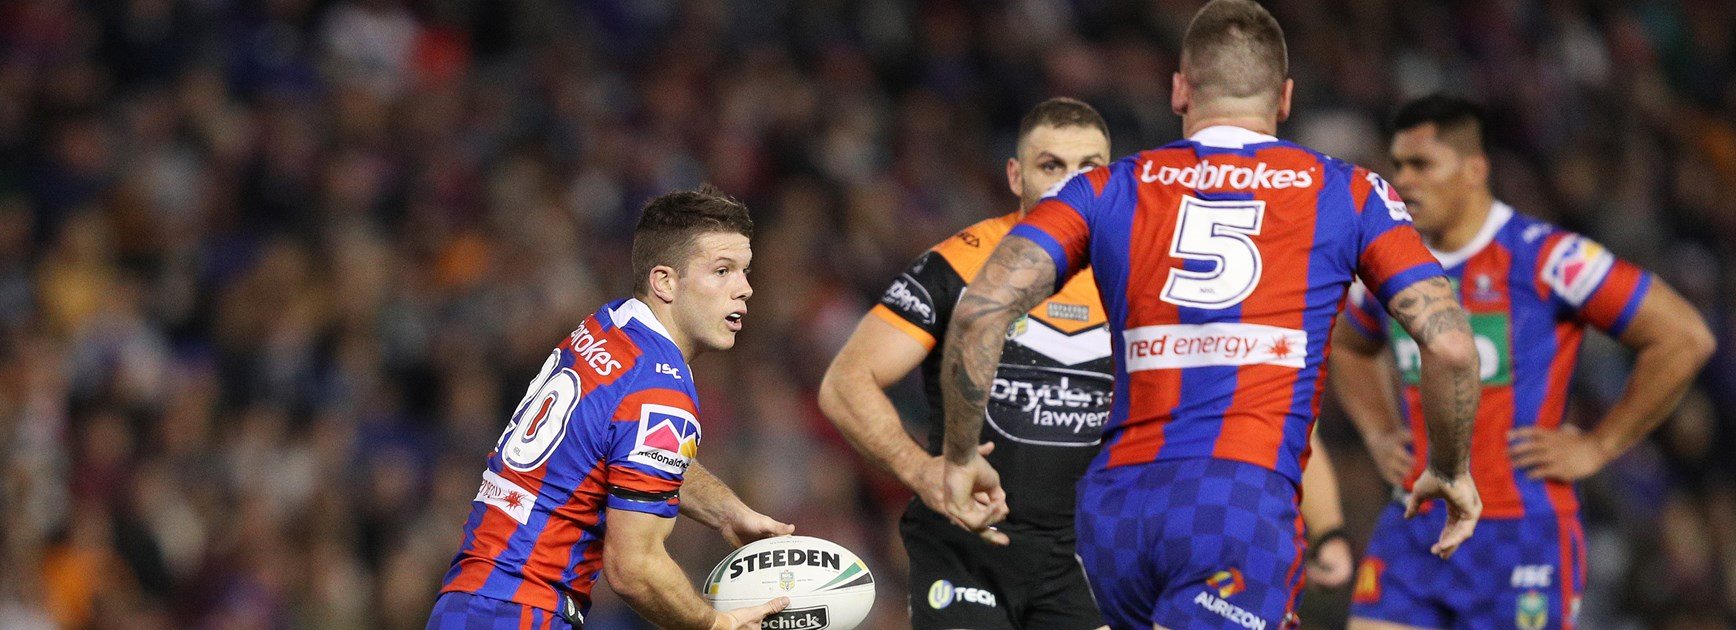 Late comeback from Knights not enough to edge out Tigers